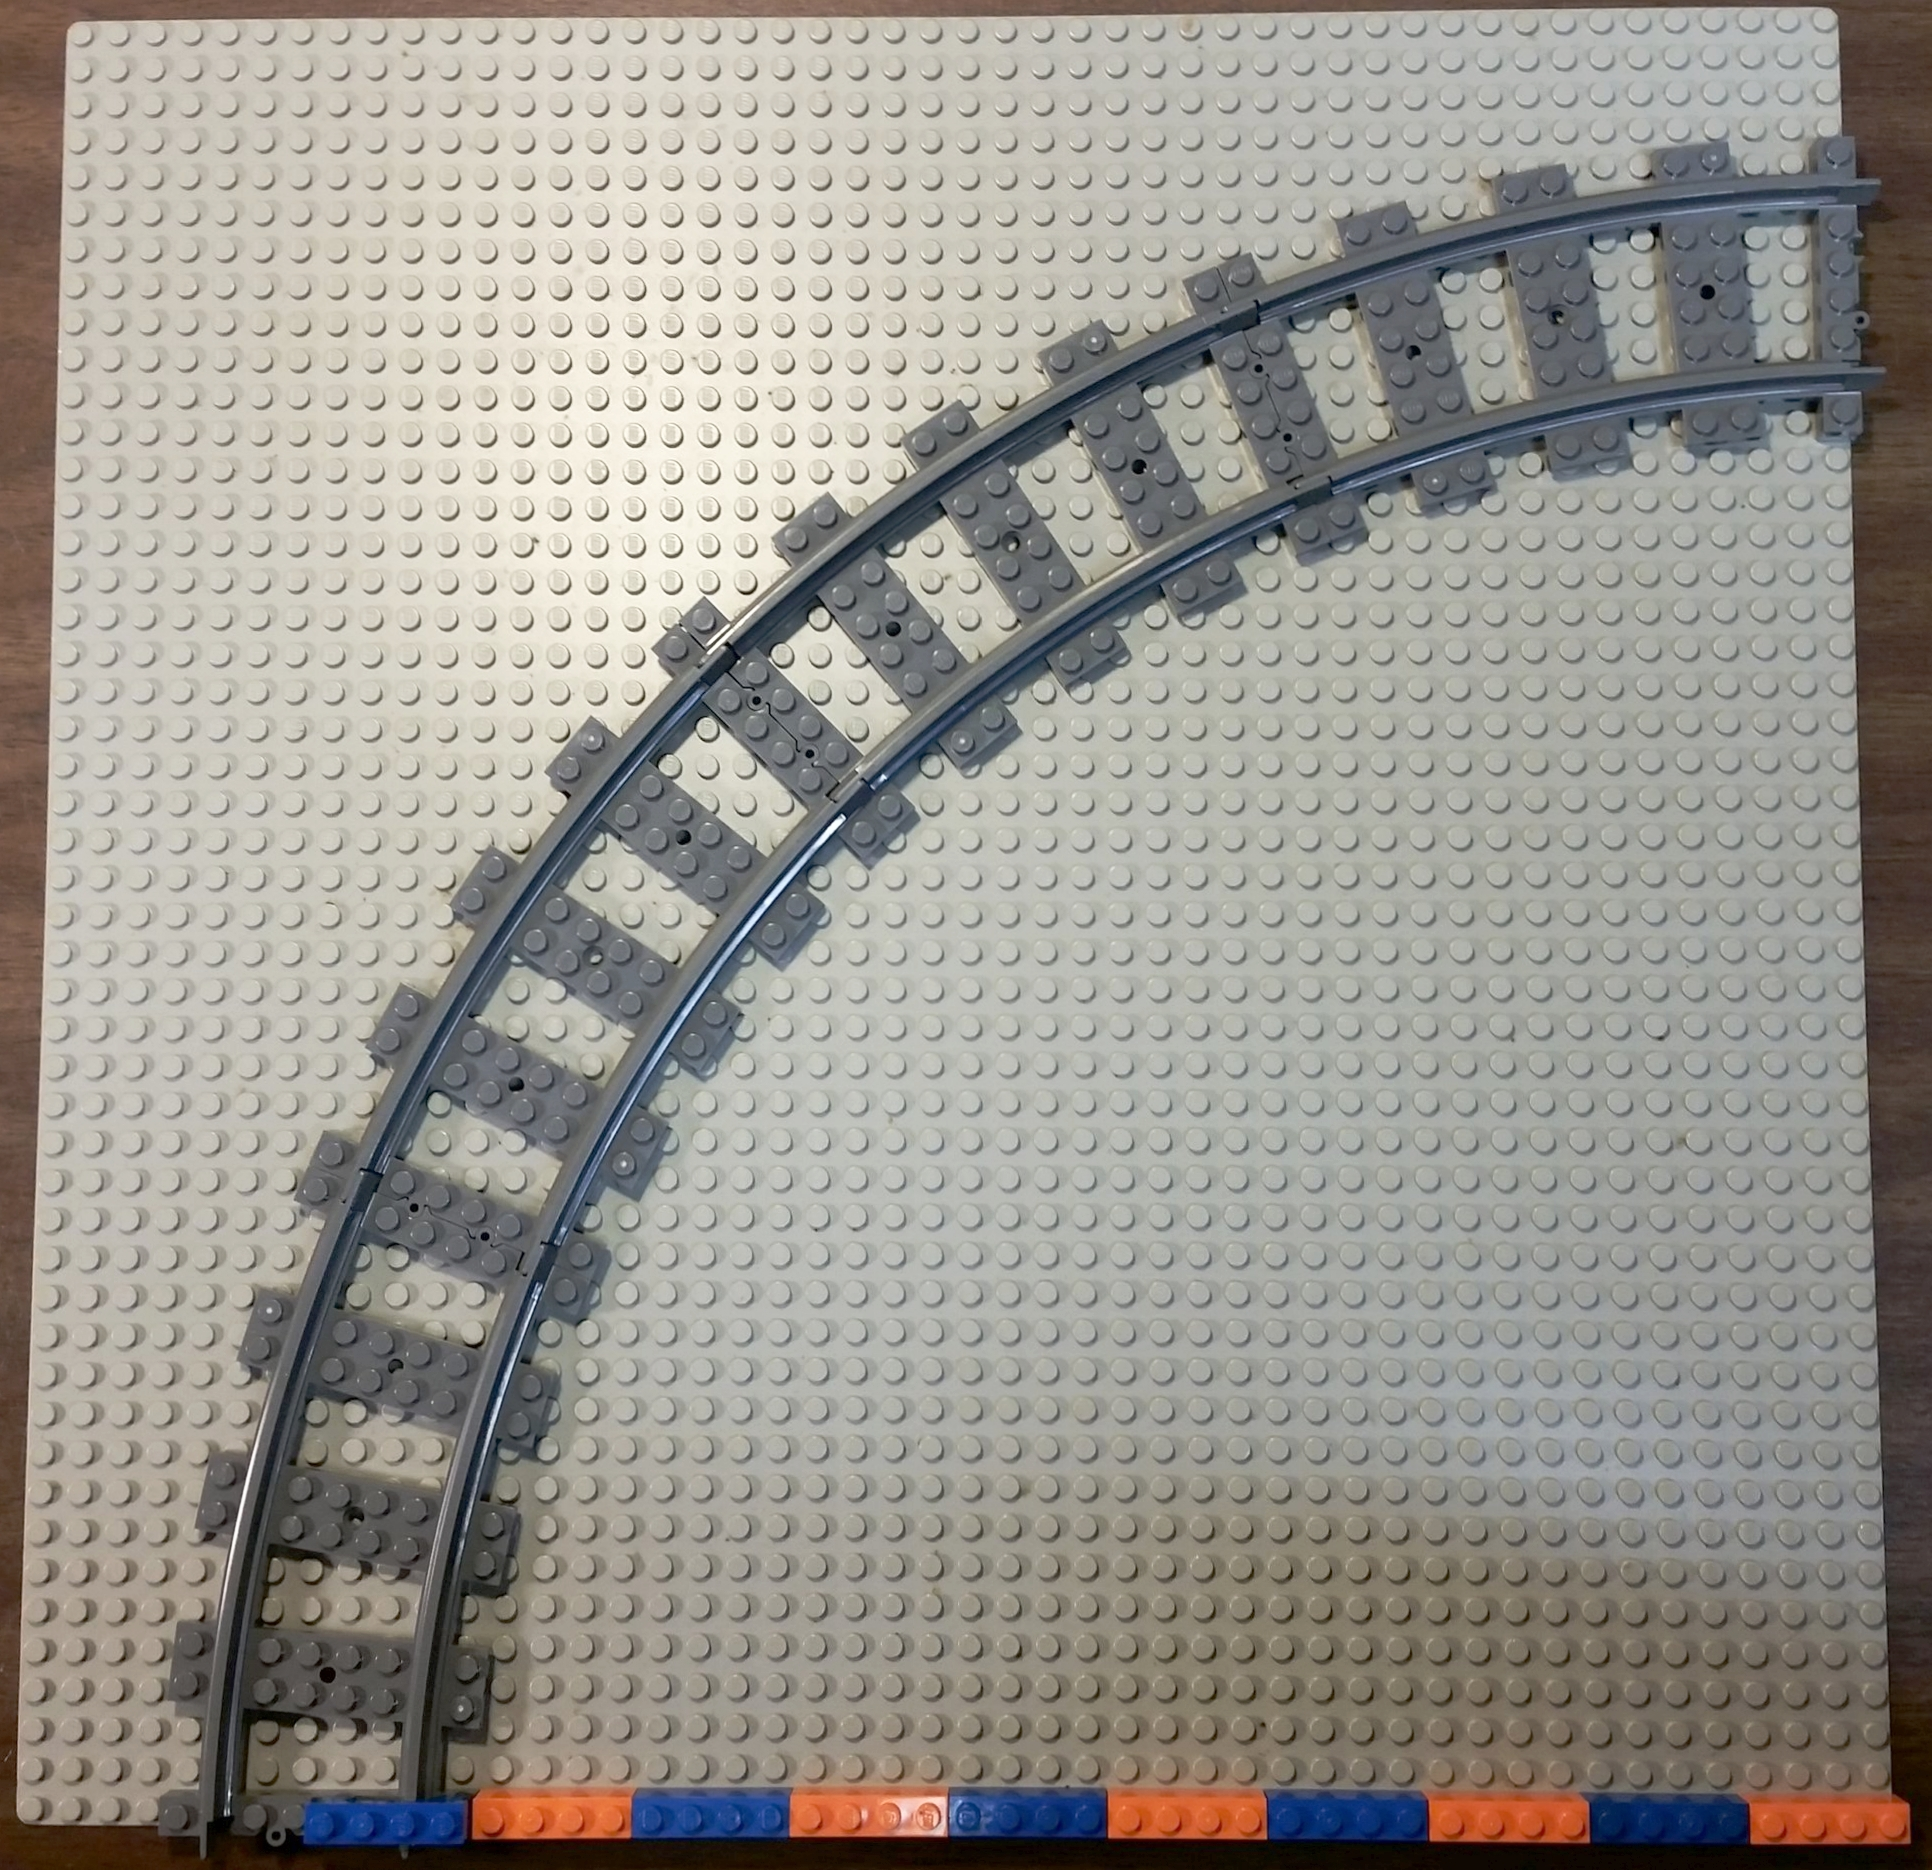 The distance from the center of the circle of track to the center of the rails is 40 studs, measured by the orange and blue 4-stud long bricks.